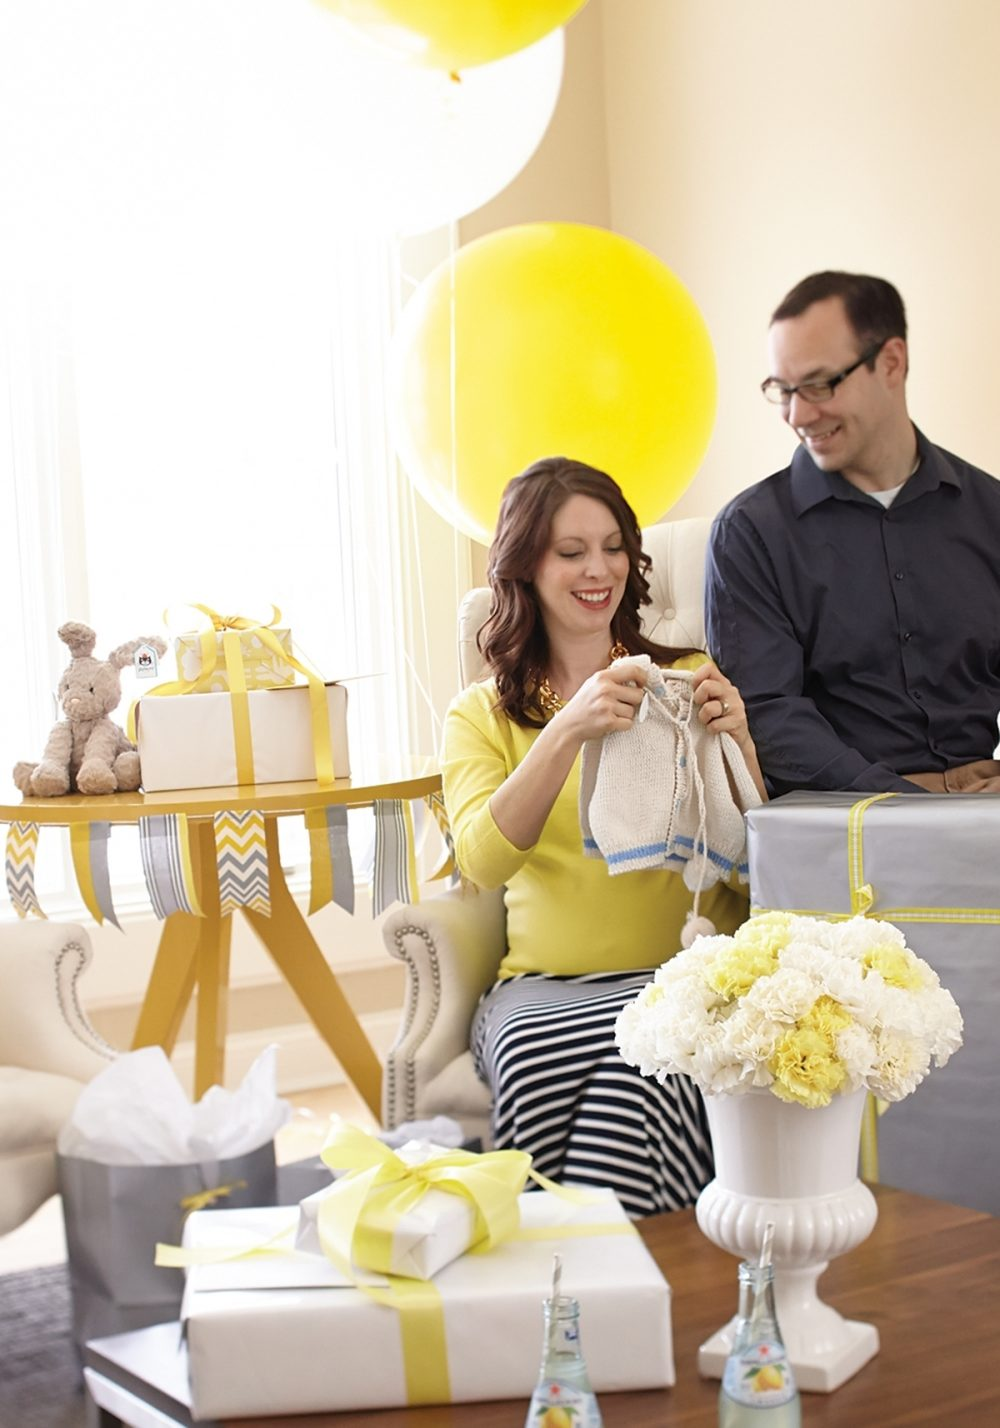 Lauren and Mike opened gifts for their new baby just three days before Miles Leon was born. Gifts were wrpped in the shower's theme colors. Carnations in yellow and white make for a simple flower arrangement.